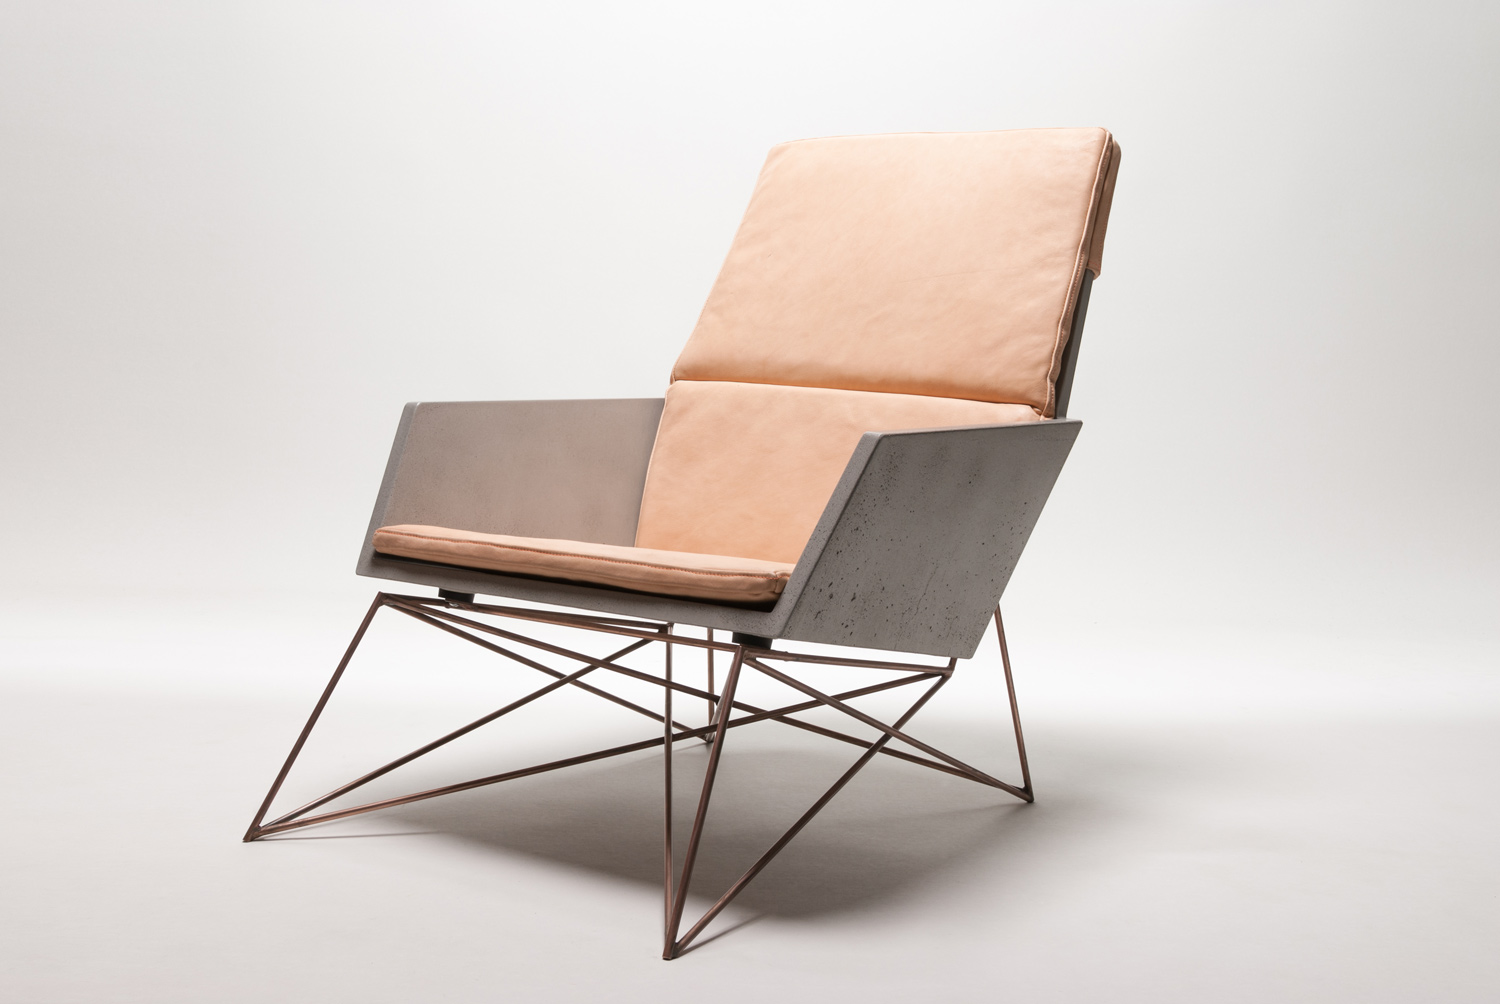 Concrete + Copper + Leather Modern Muskoka Chair